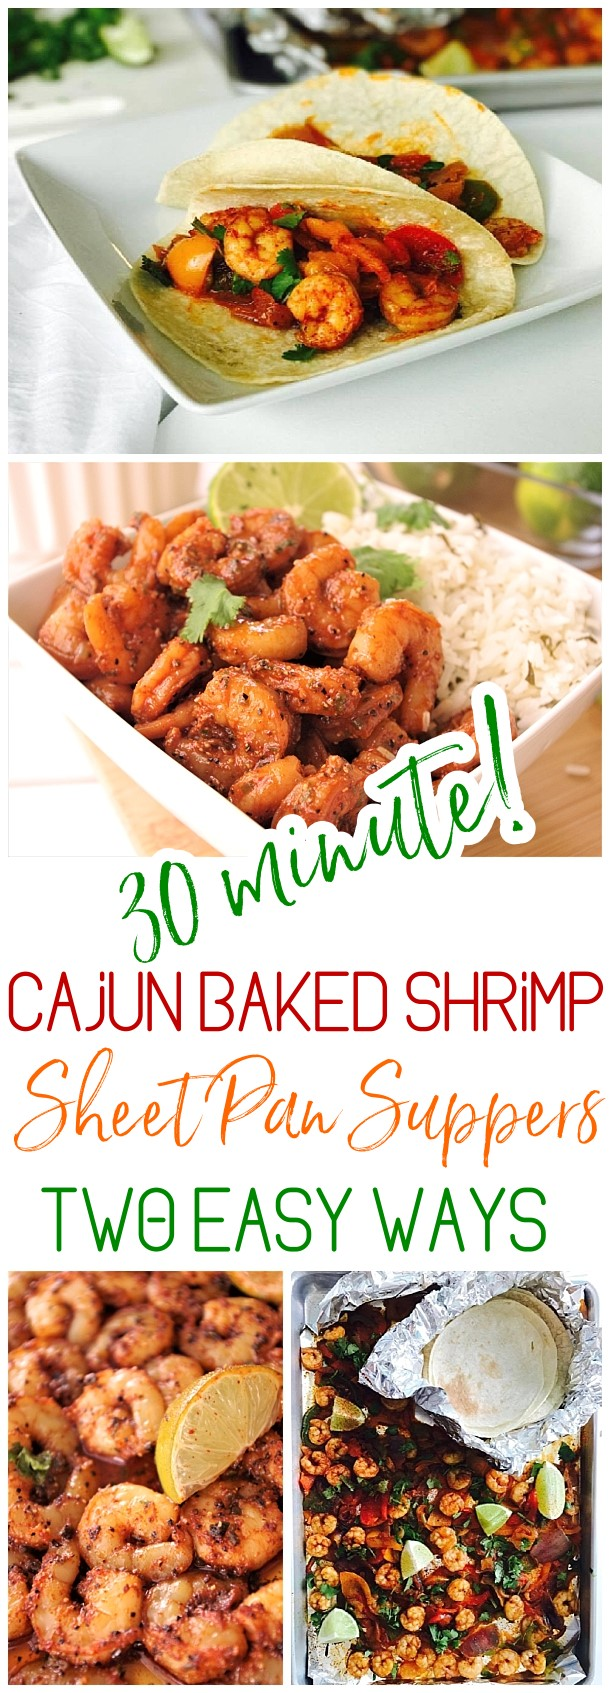 The BEST Sheet Pan Suppers Recipes – Easy and Quick Baked Family ...